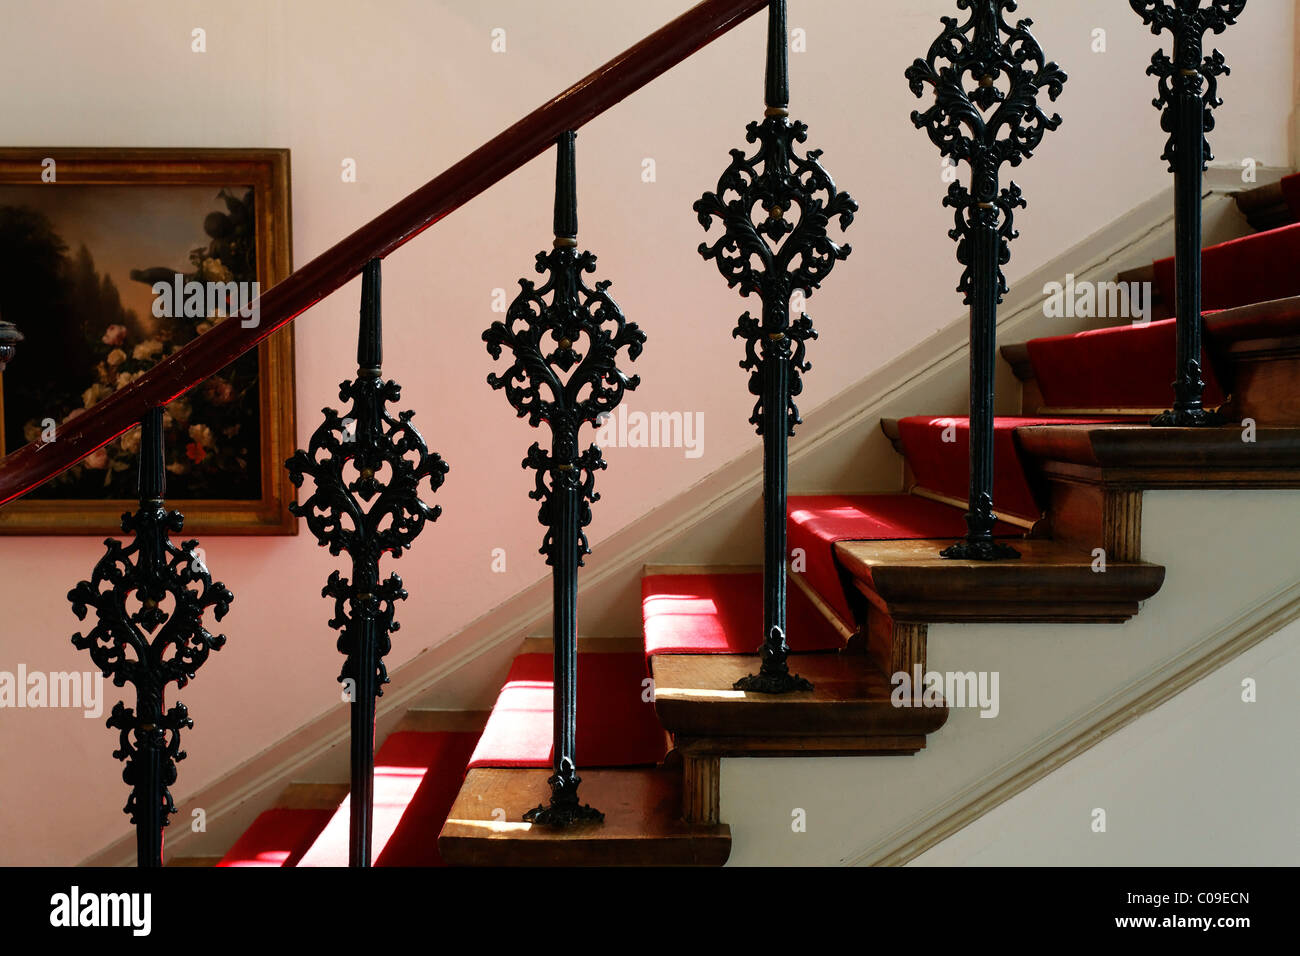 Staircase with decorative cast iron railings from the 19th century, Koekkoek-Haus museum, Kleve, Niederrhein region - Stock Image